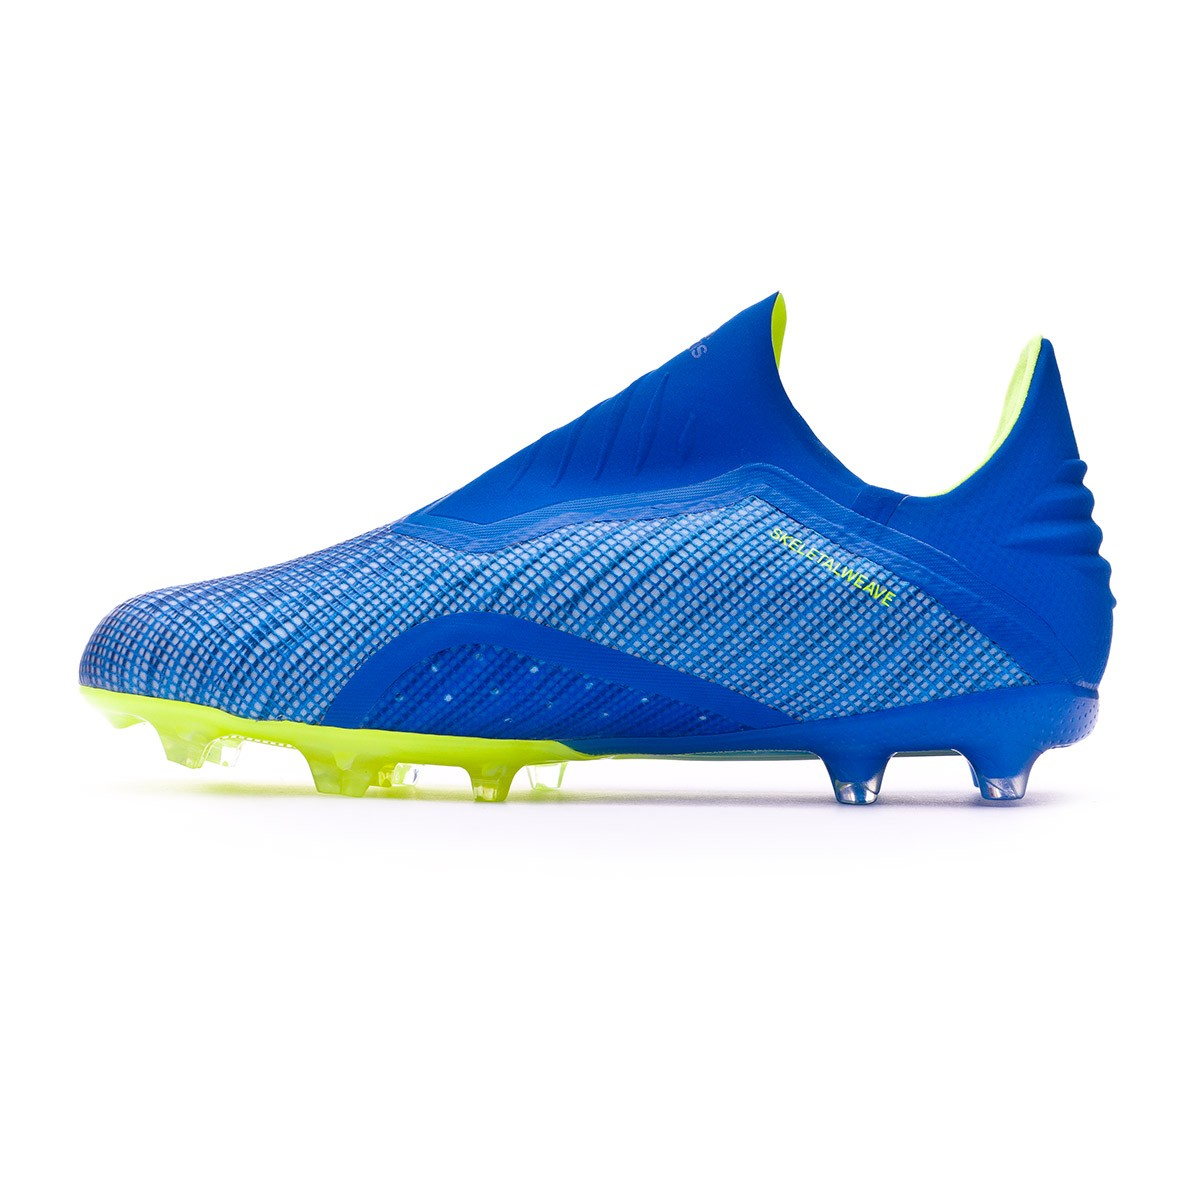 e65f2b20f1a Football Boots adidas Kids X 18+ FG Foot blue-Solar yellow-Black - Tienda  de fútbol Fútbol Emotion